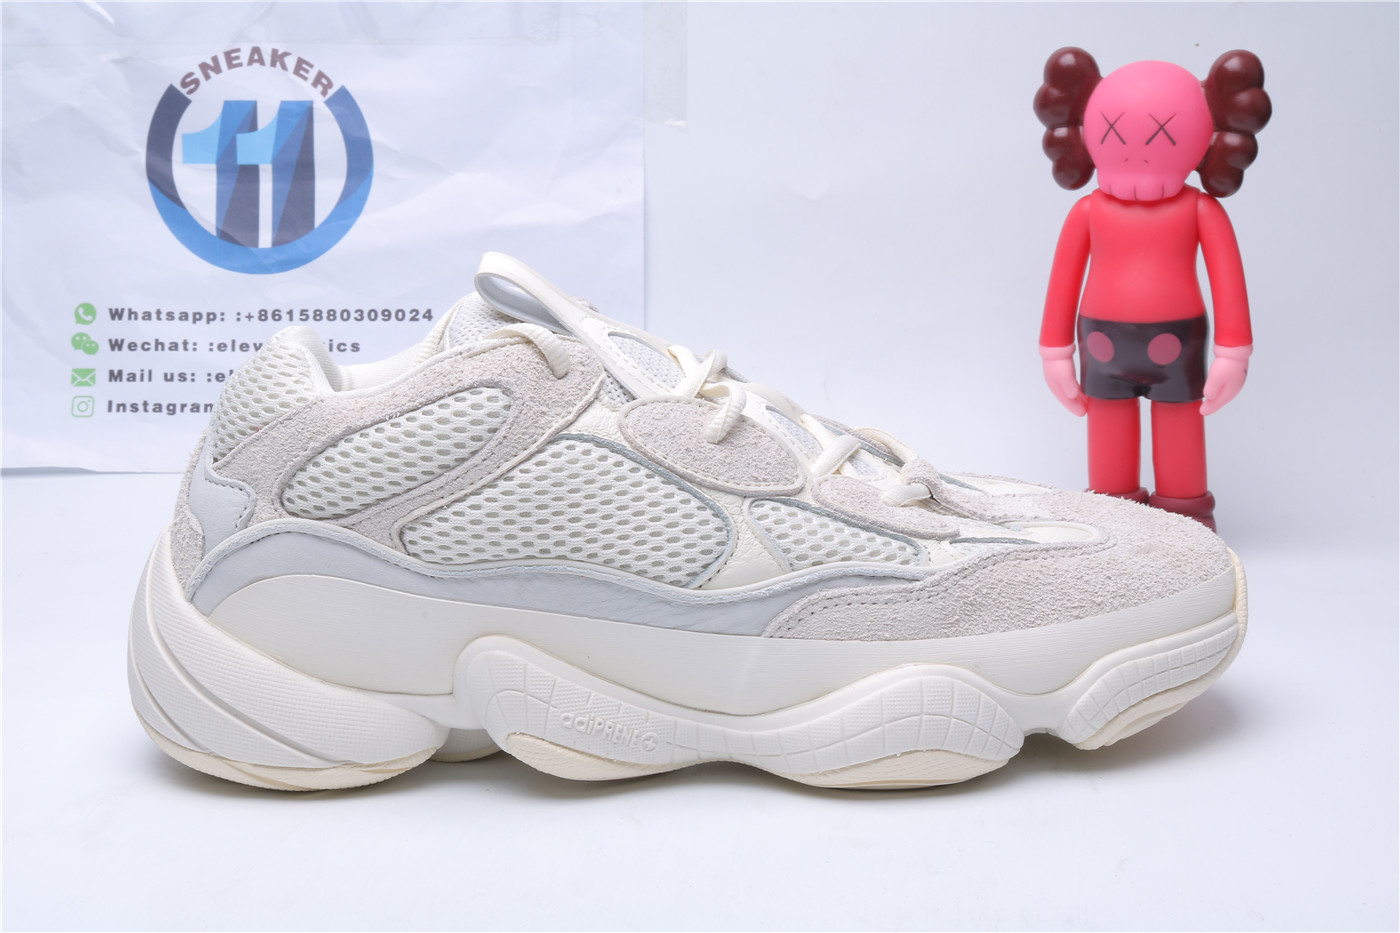 Adidas Yeezy 500 Bone White FV3573,All Products : Eleven Kicks, Eleven Kicks